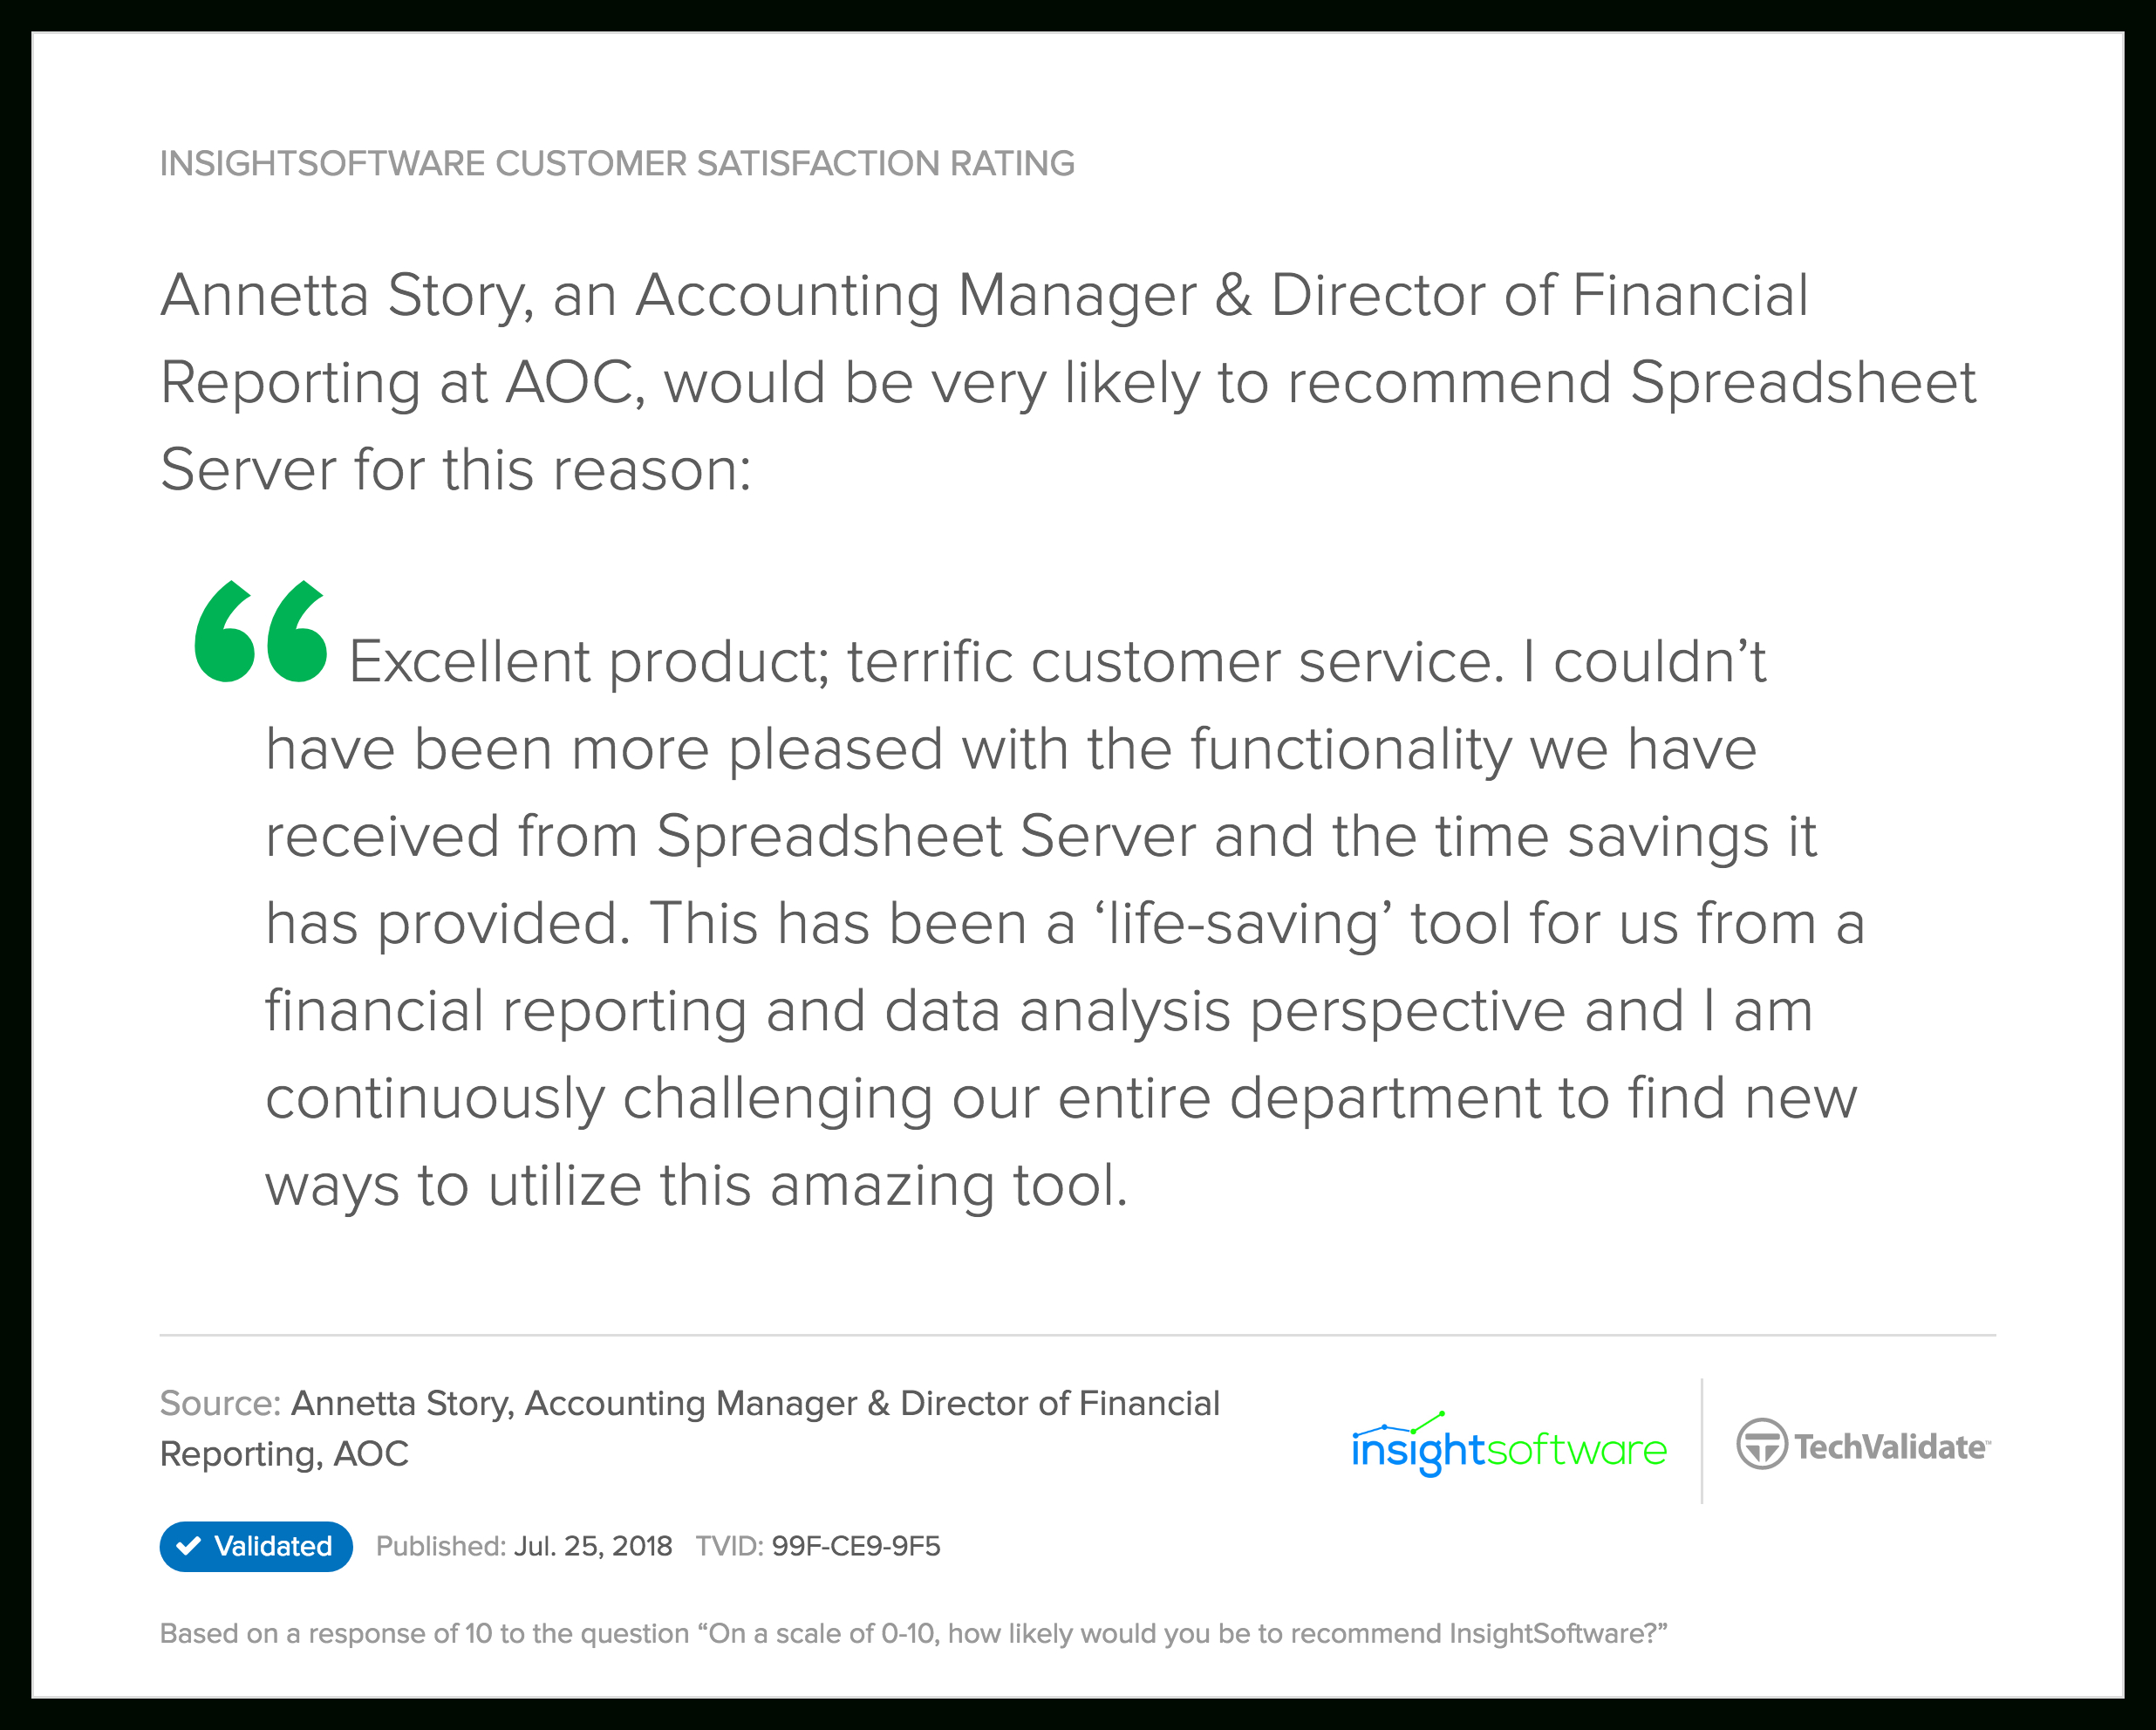 Global Spreadsheet Server With Insightsoftware Techfact: Insightsoftware Customer Satisfaction